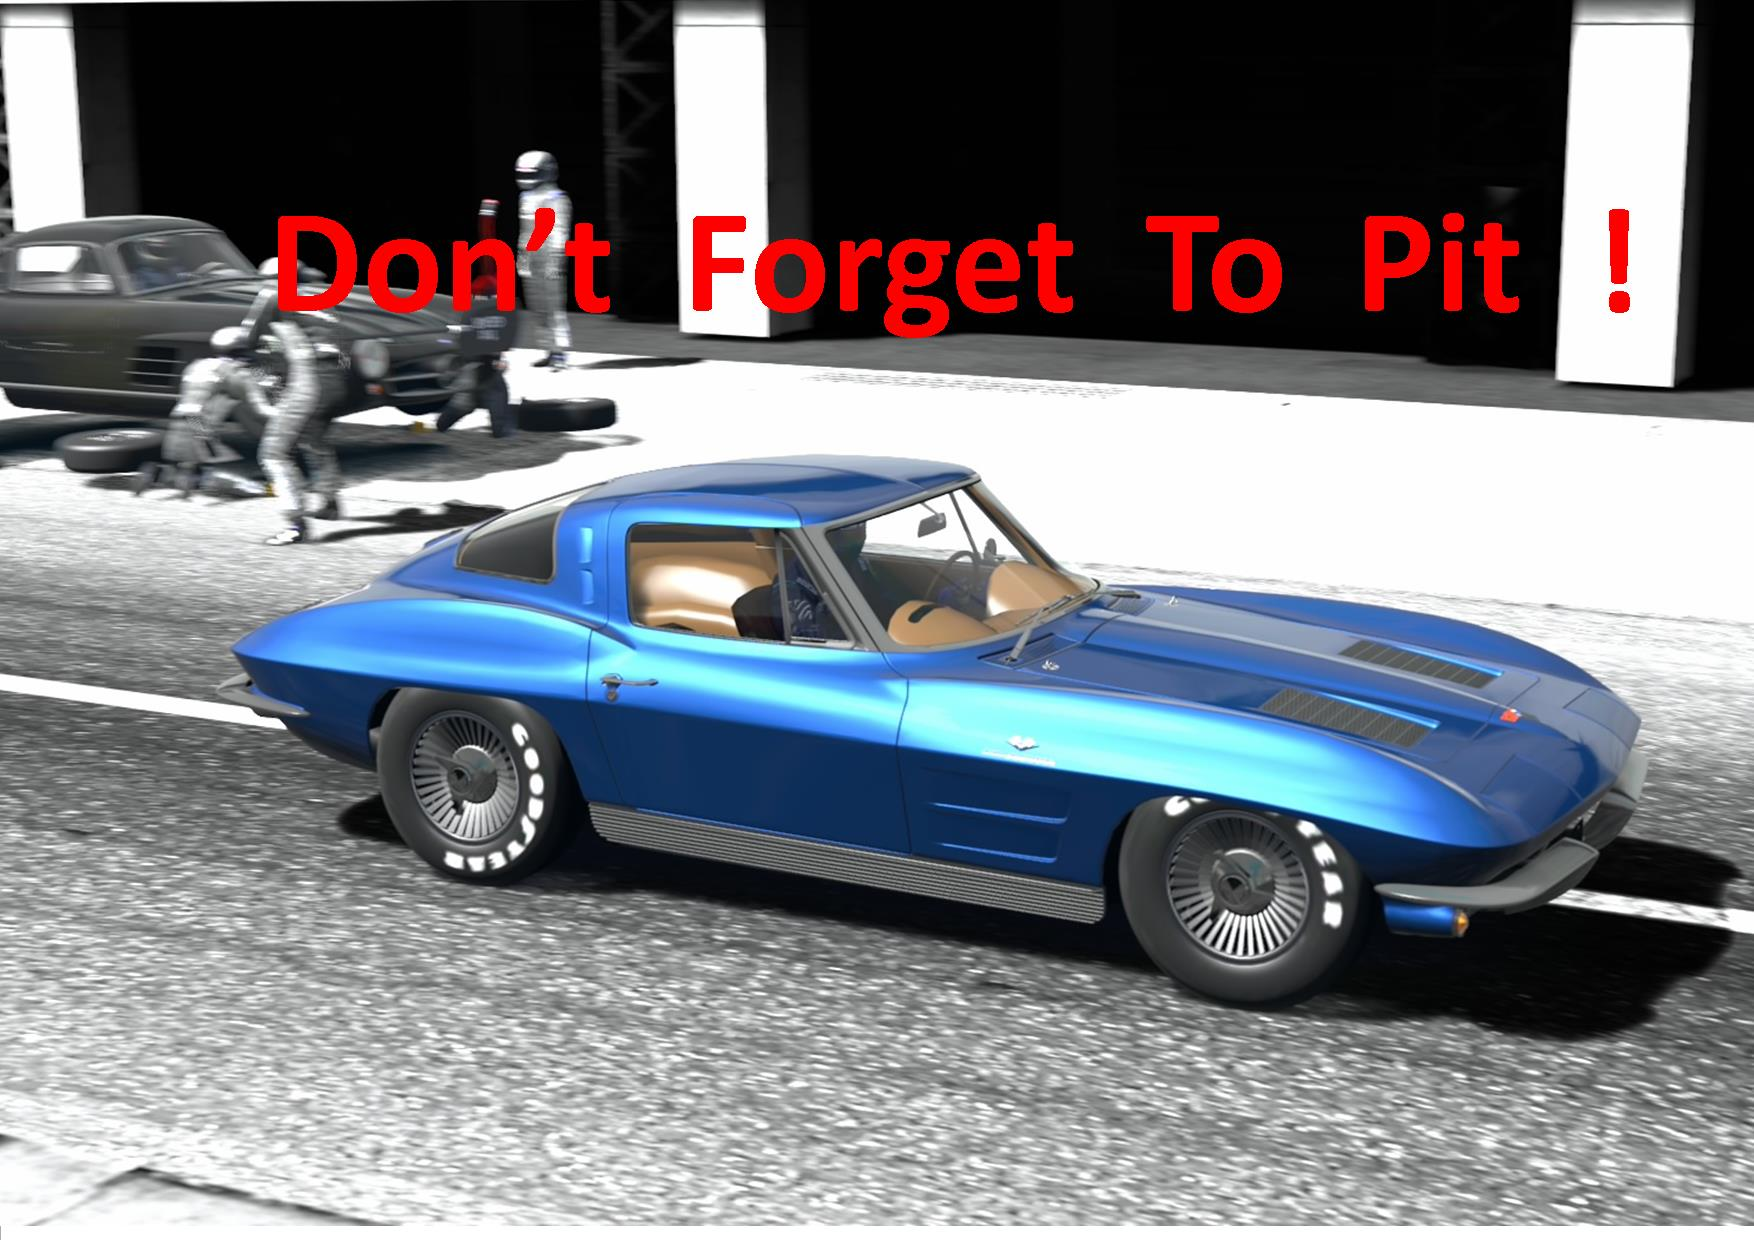 GT6 don't forget to pit.jpg